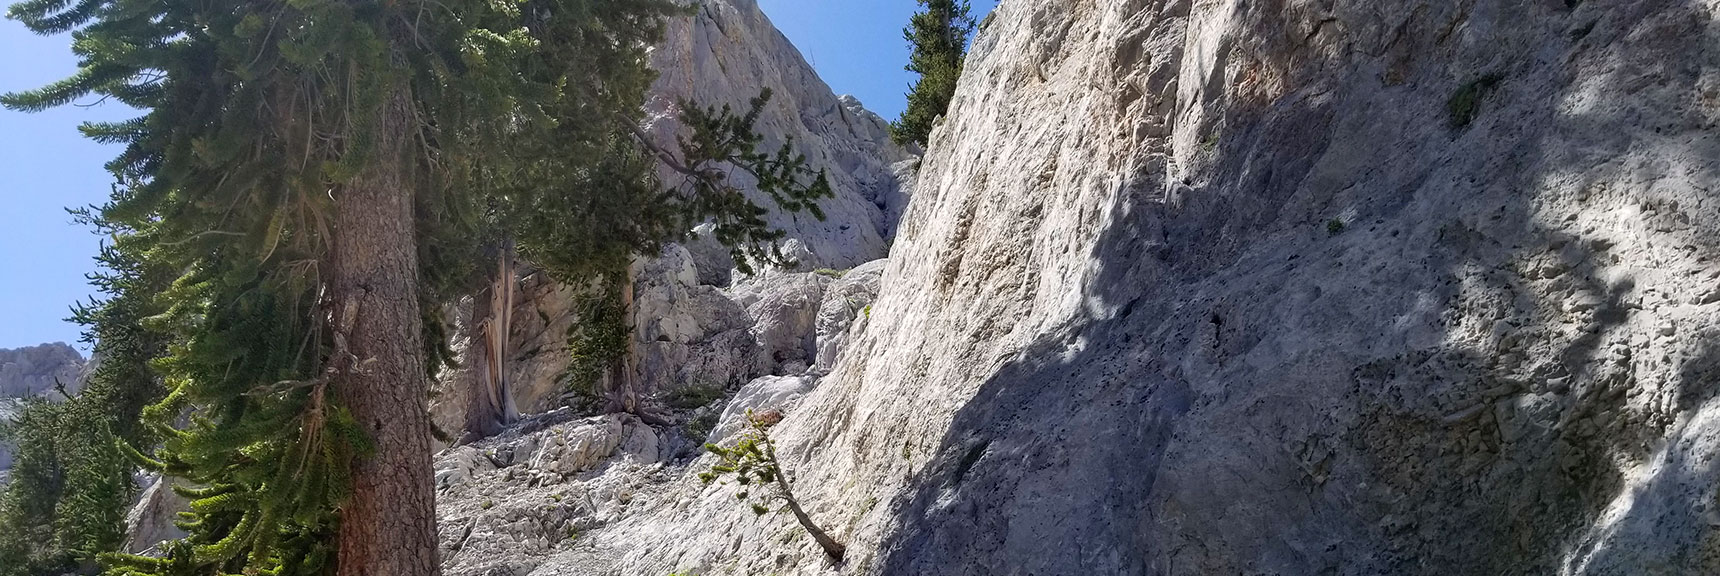 Entering the Mouth of the Narrow Mummy Mt. East Final Approach Canyon in Mt. Charleston Wilderness, Nevada